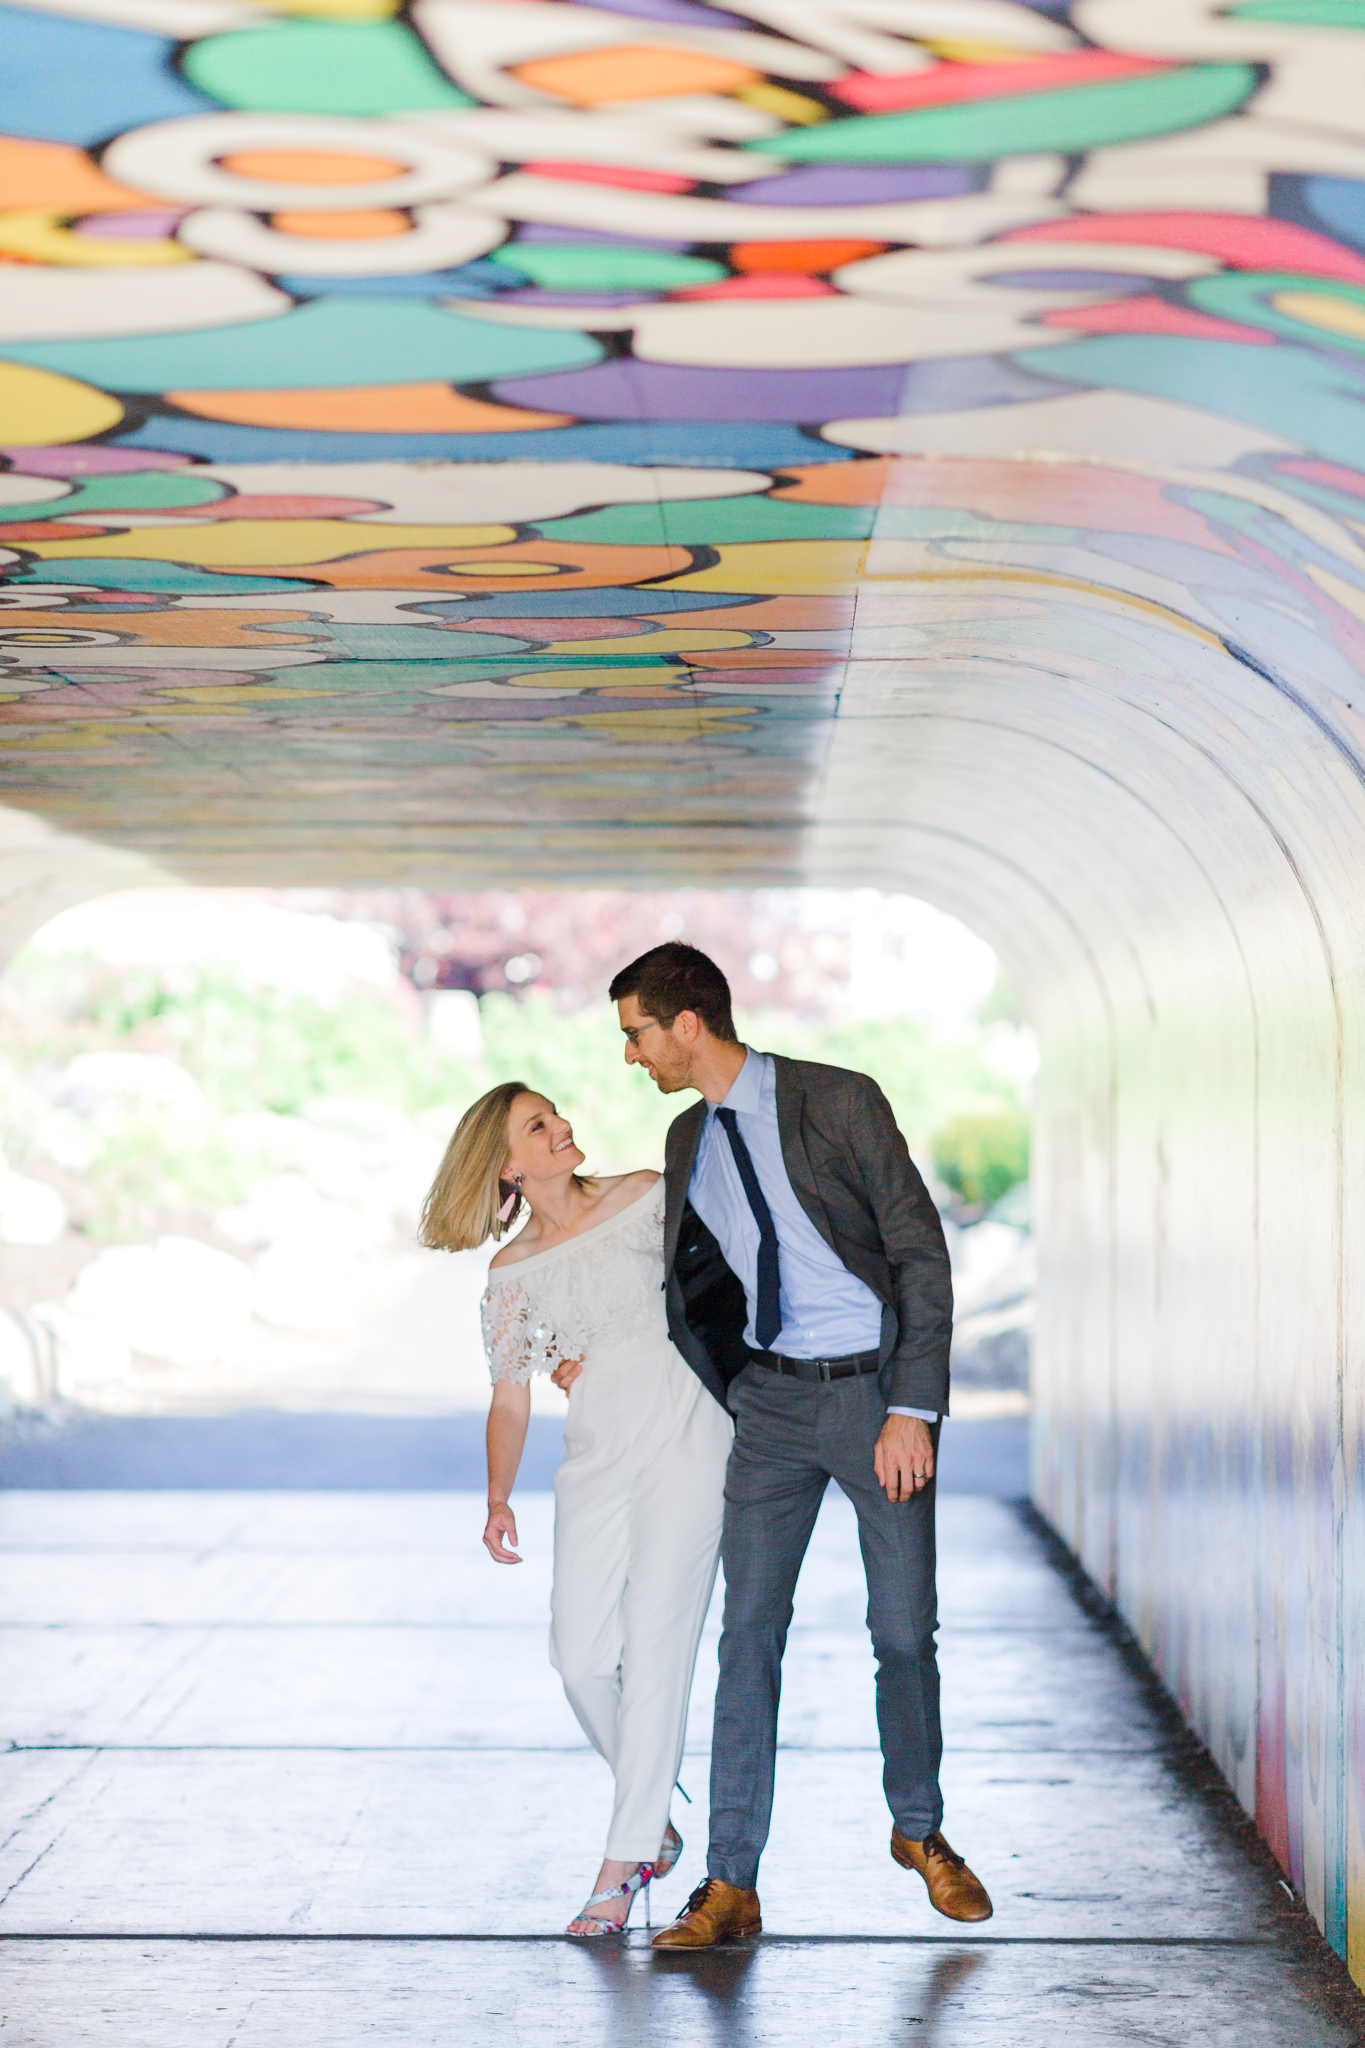 Bride and groom walking in Old Mill District tunnel